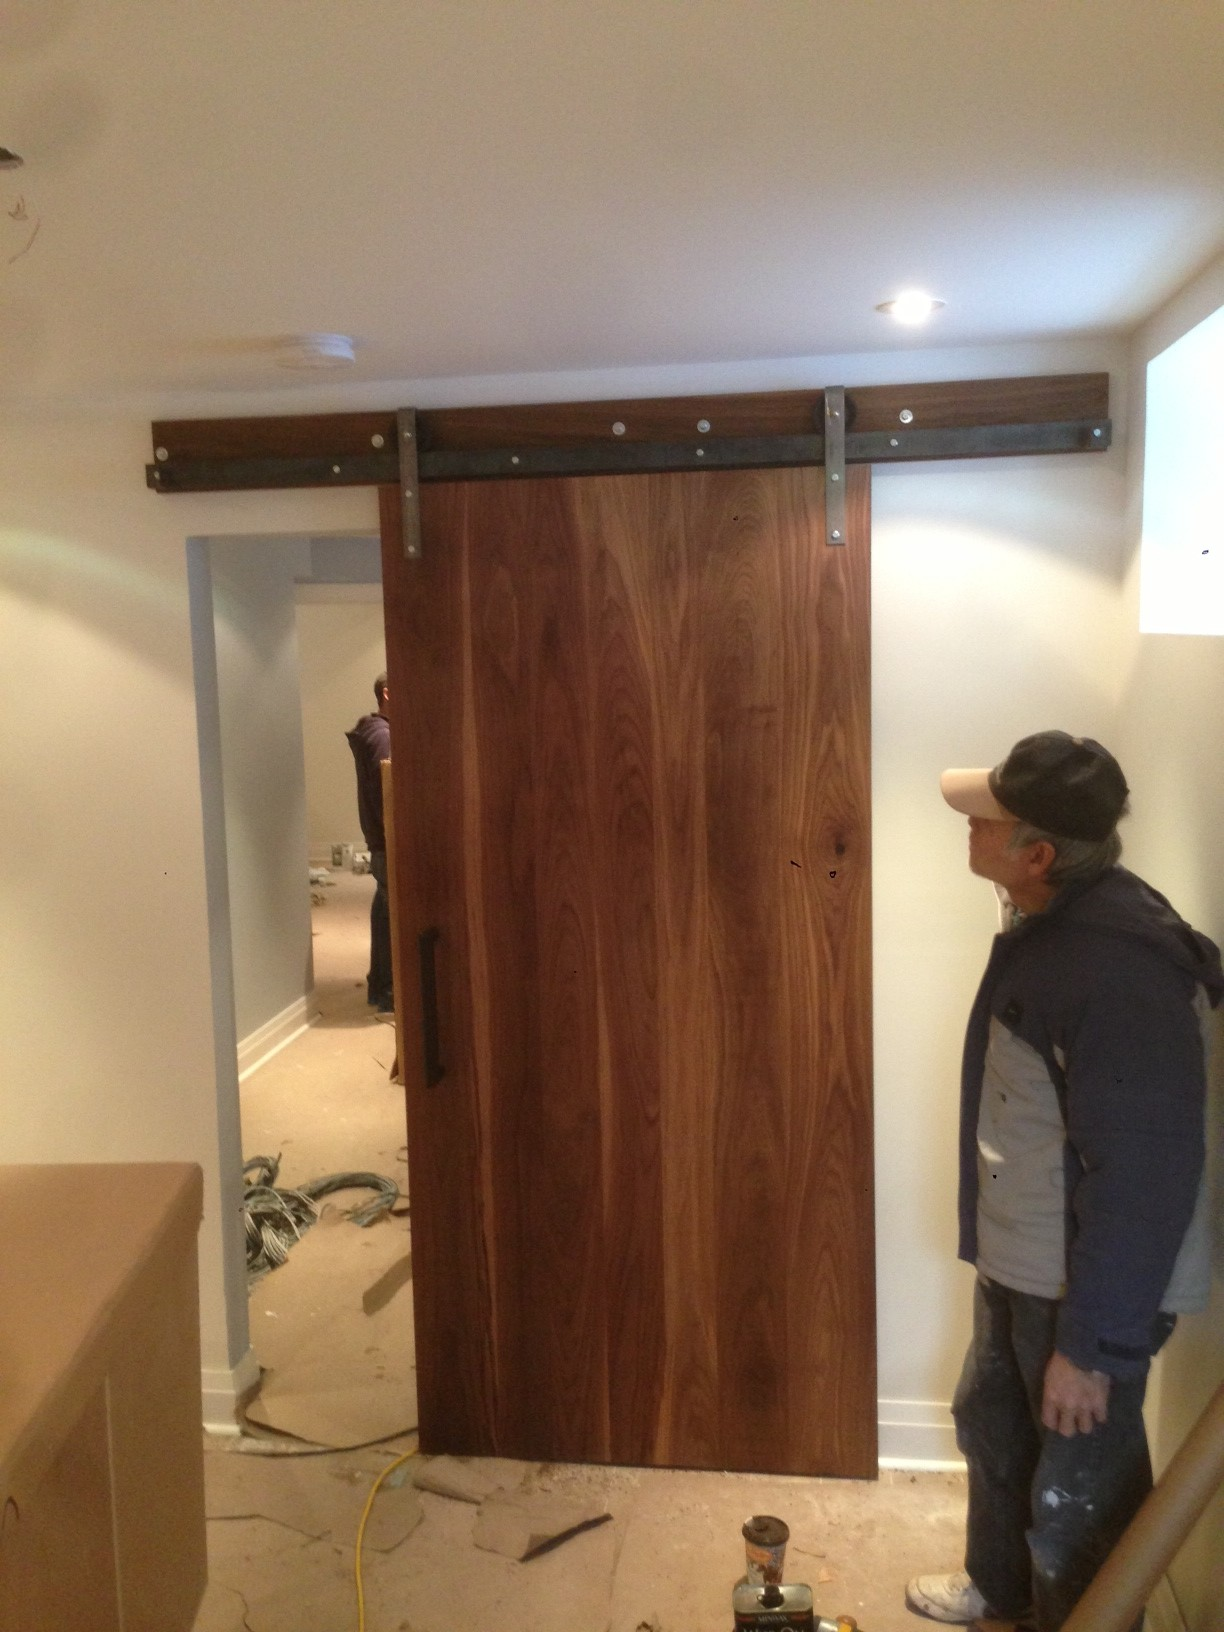 Just after the installation.  This is the entrance to a laundry room in the basement (a fancy one, I imagine), but it's because it's the first thing one sees coming downstairs, it's worth all the while to install this beautiful walnut door there.